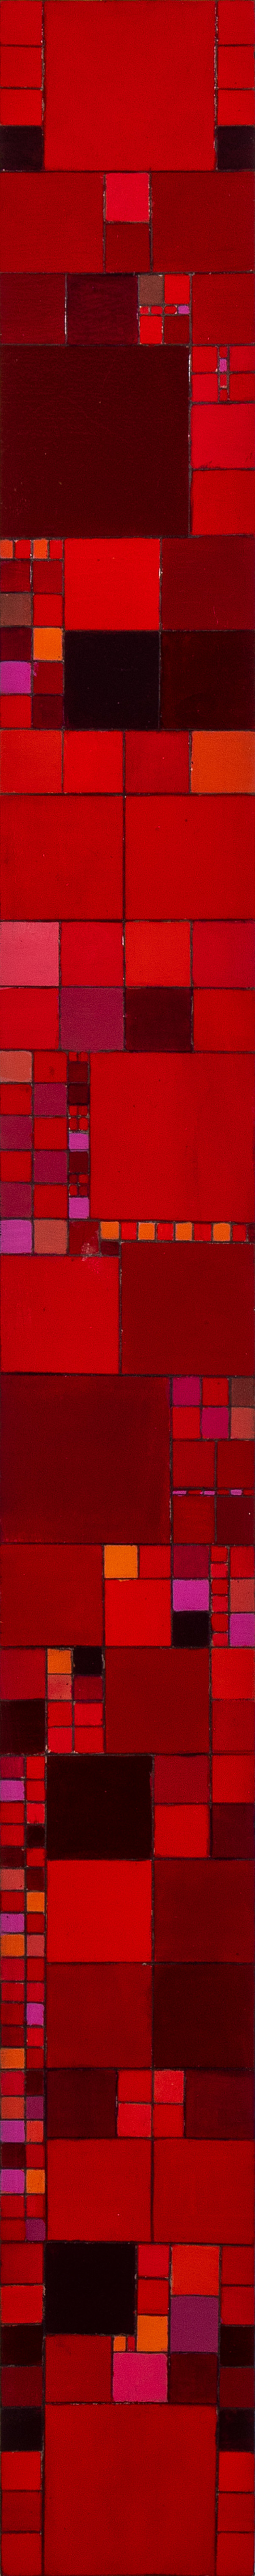 Squares by Claudia Lohmann